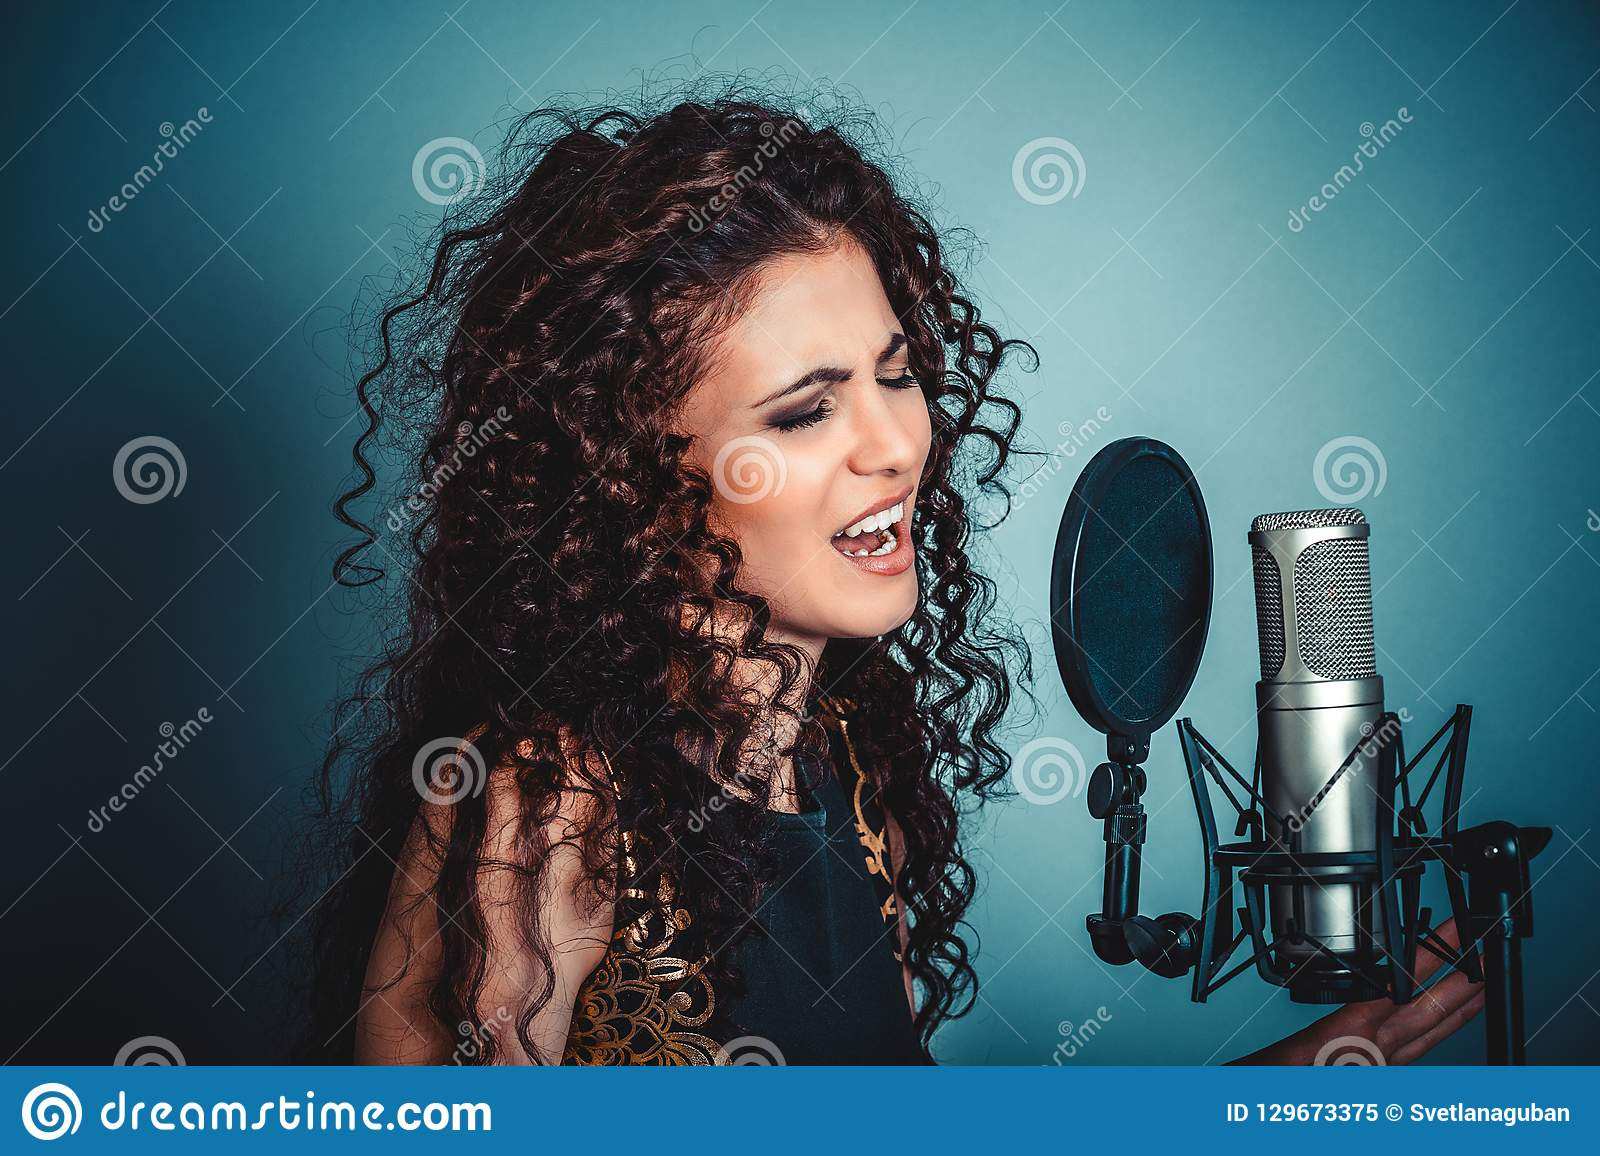 Singer. Woman lady girl singing with microphone singing